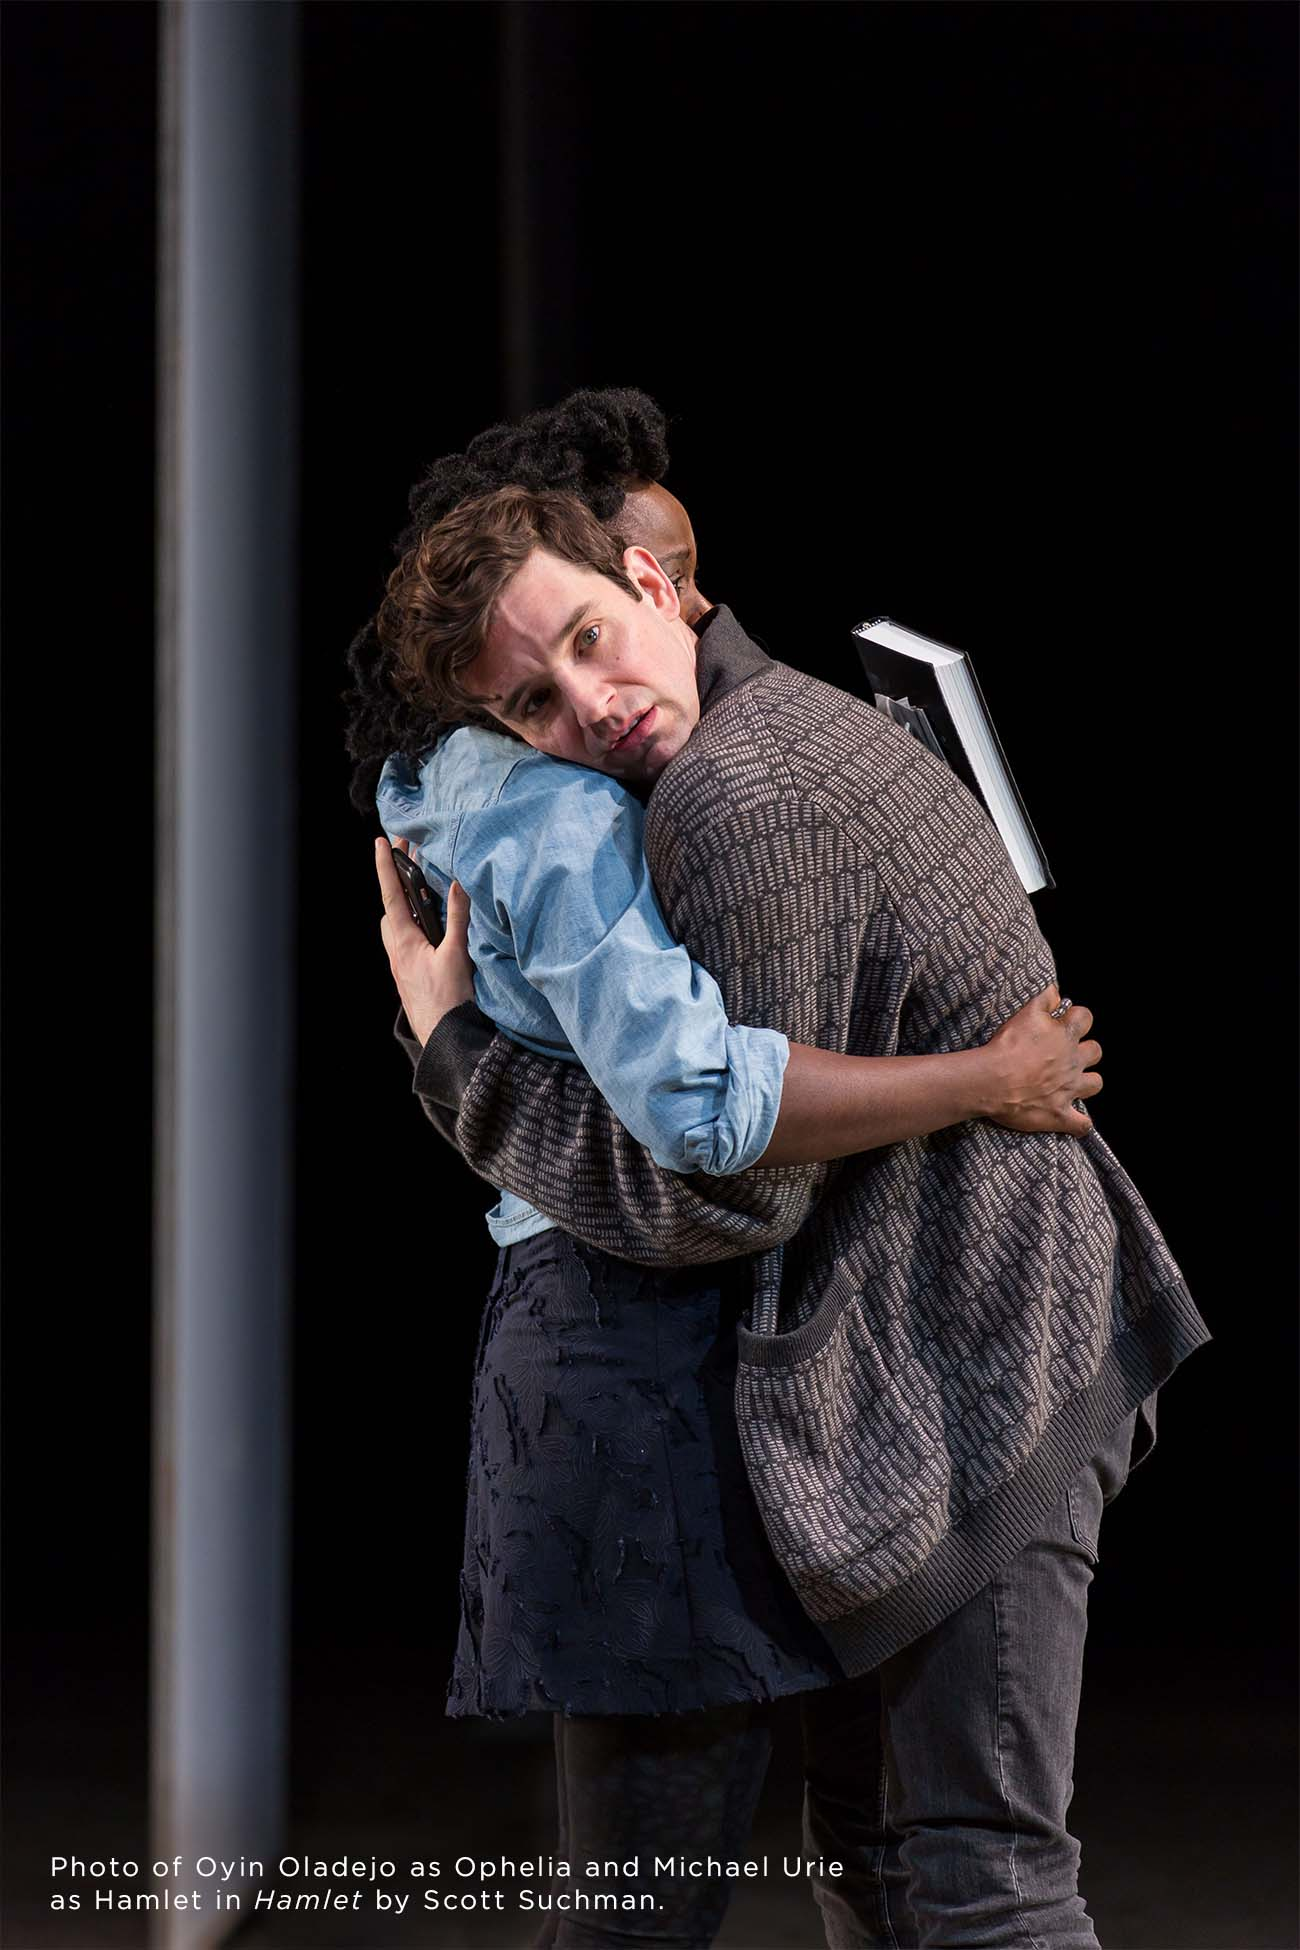 Photo of Oyin Oladejo and Michael Urie by Scott Suchman.